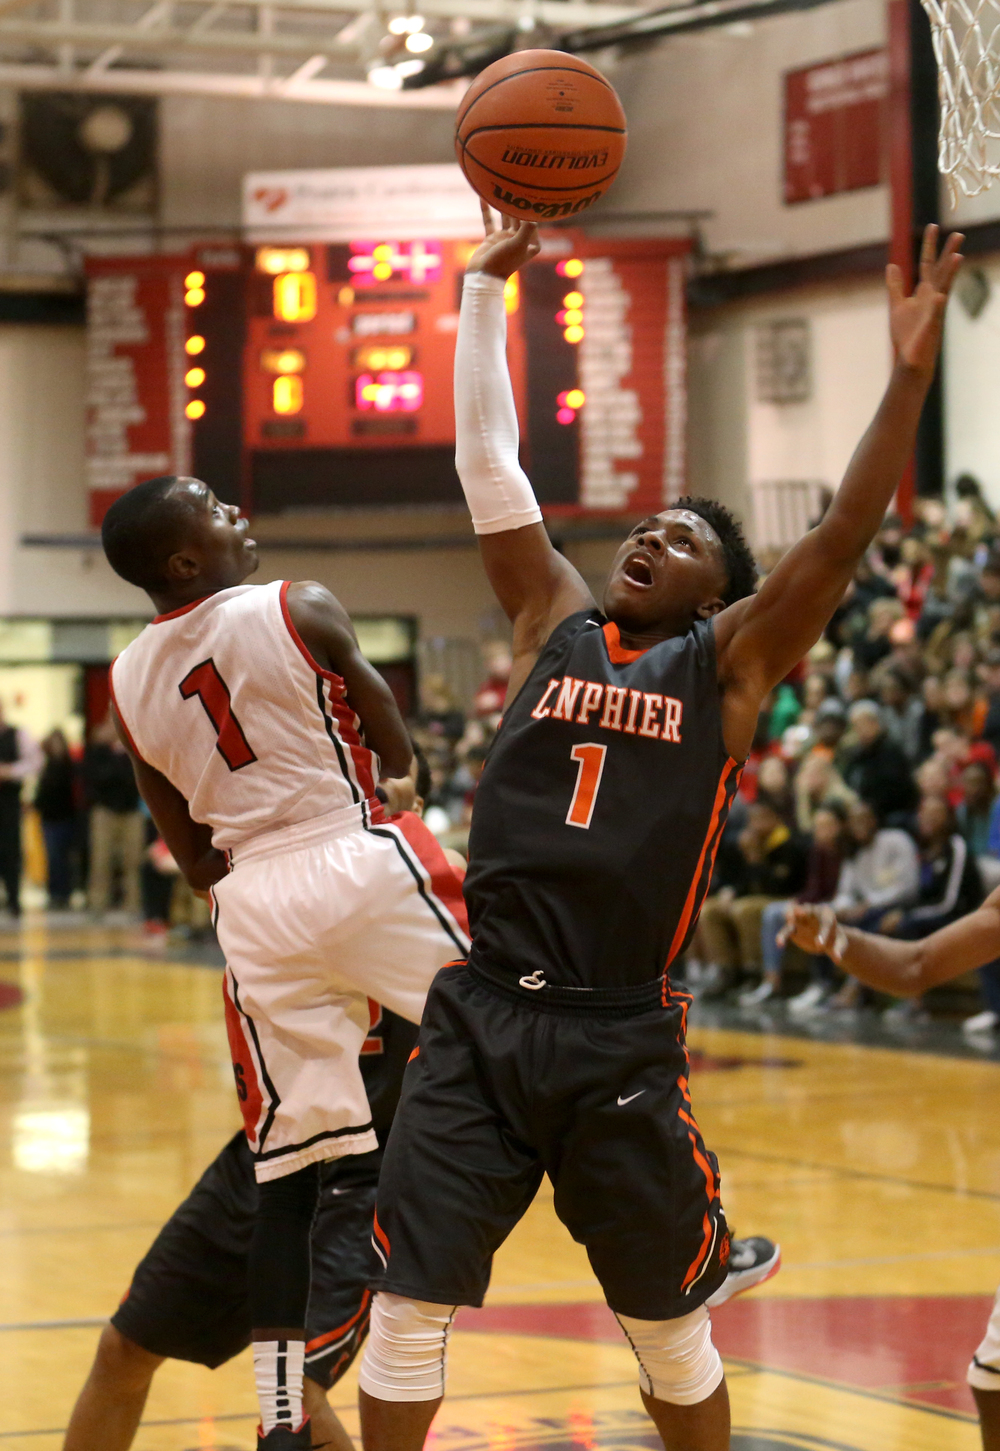 Lanphier's Yaakema Rose looks to recover a rebound. Lanphier defeated Springfield High School 64-54 in boys basketball action at Springfield's Willard Duey Gym on Tuesday evening, Feb. 10, 2015. David Spencer/The State Journal-Register